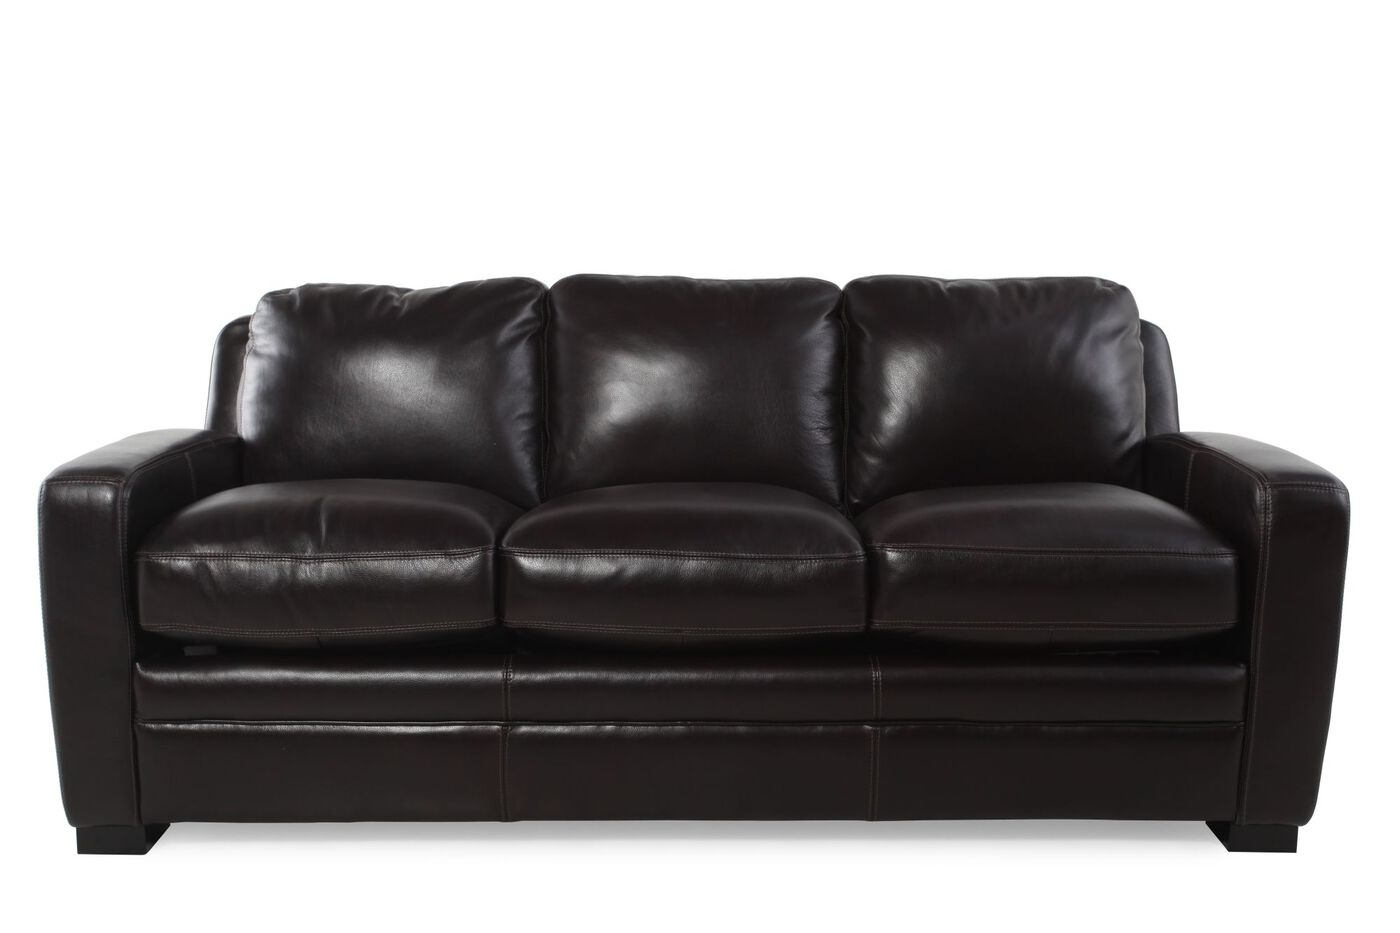 Traditional Leather Queen Sleeper Sofa in Black | Mathis Brothers ...